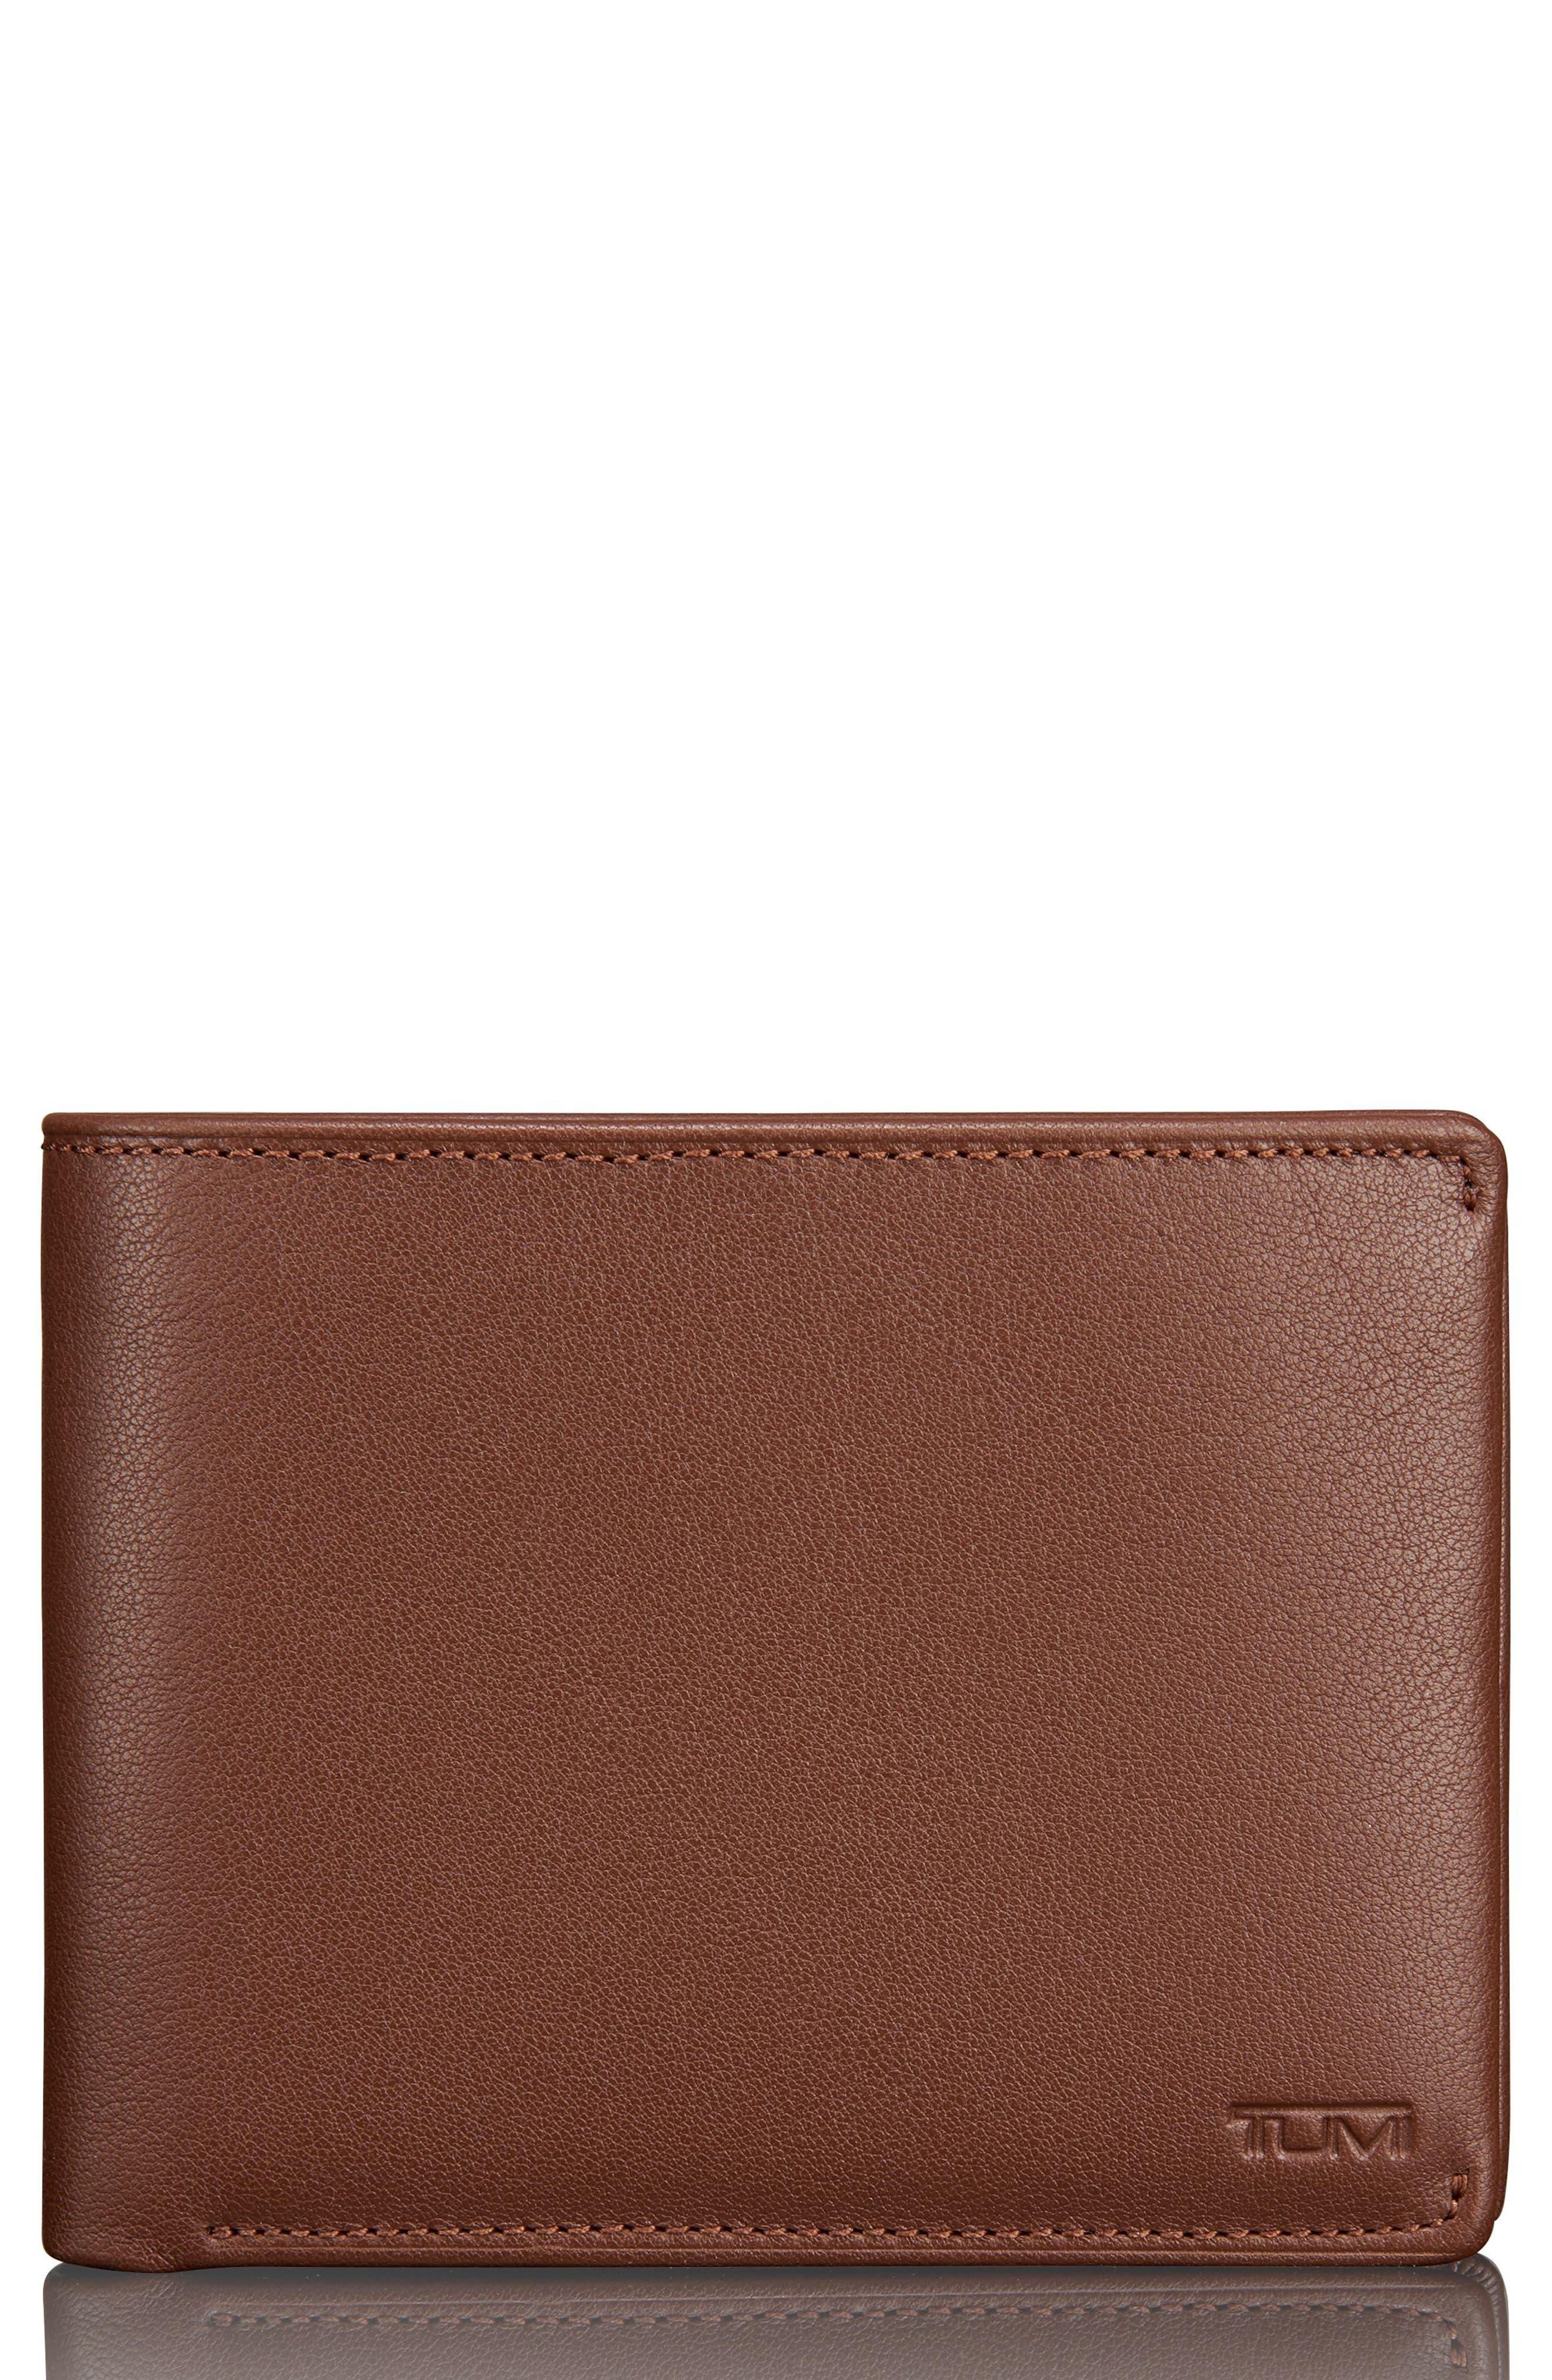 Global Passcase Wallet,                         Main,                         color, Brown Textured